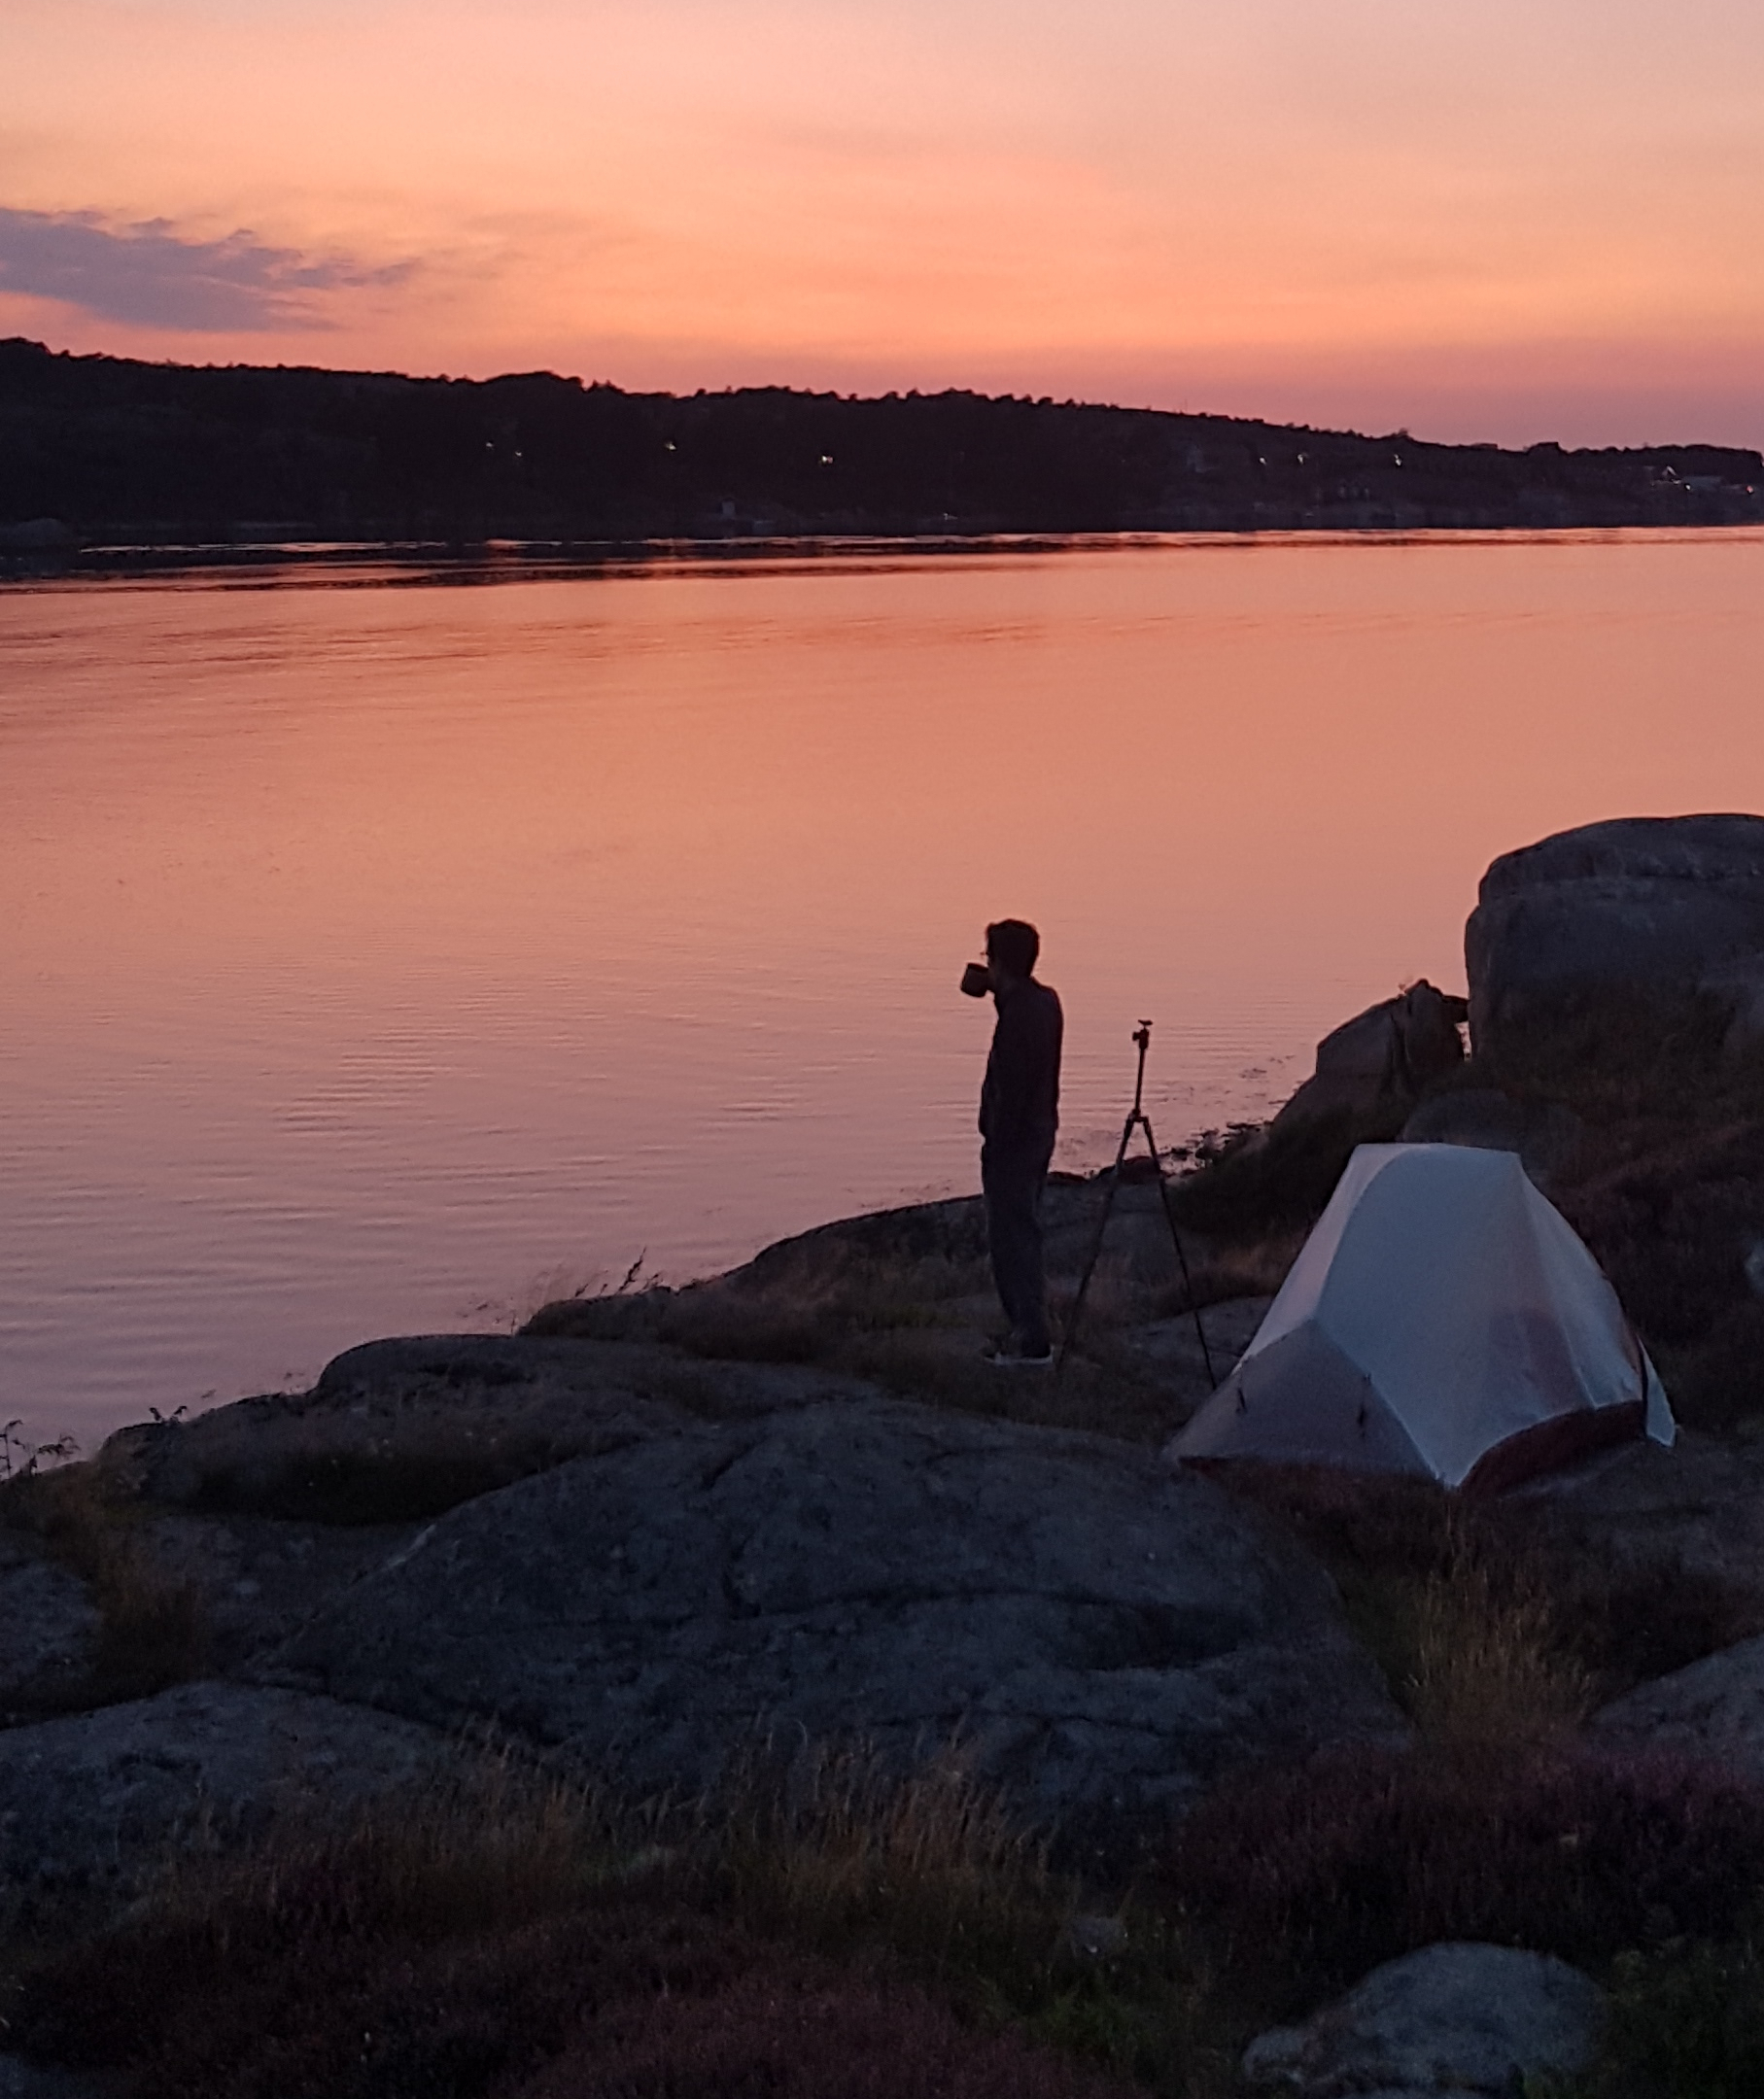 Sunset on the Bohuslan coast, sleeping in a tent in Sweden